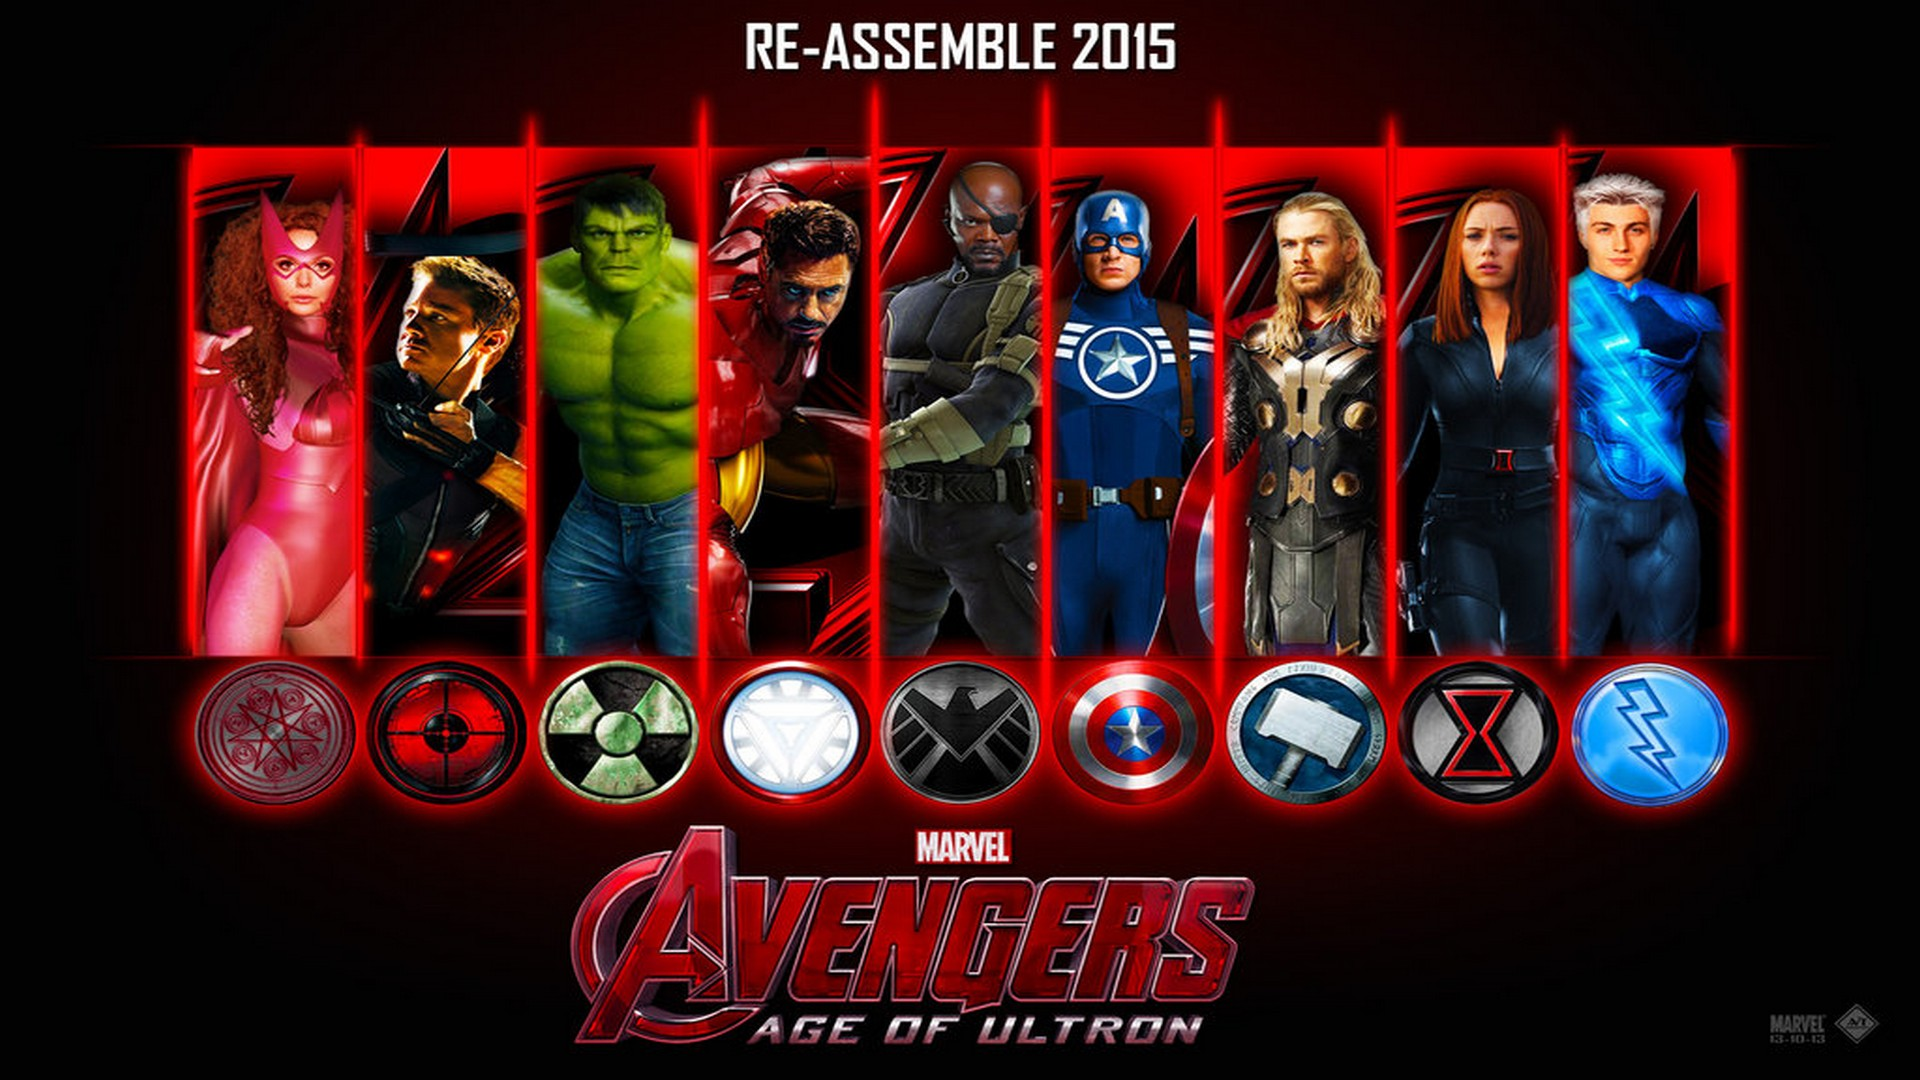 avengers age of ultron full movie download free english